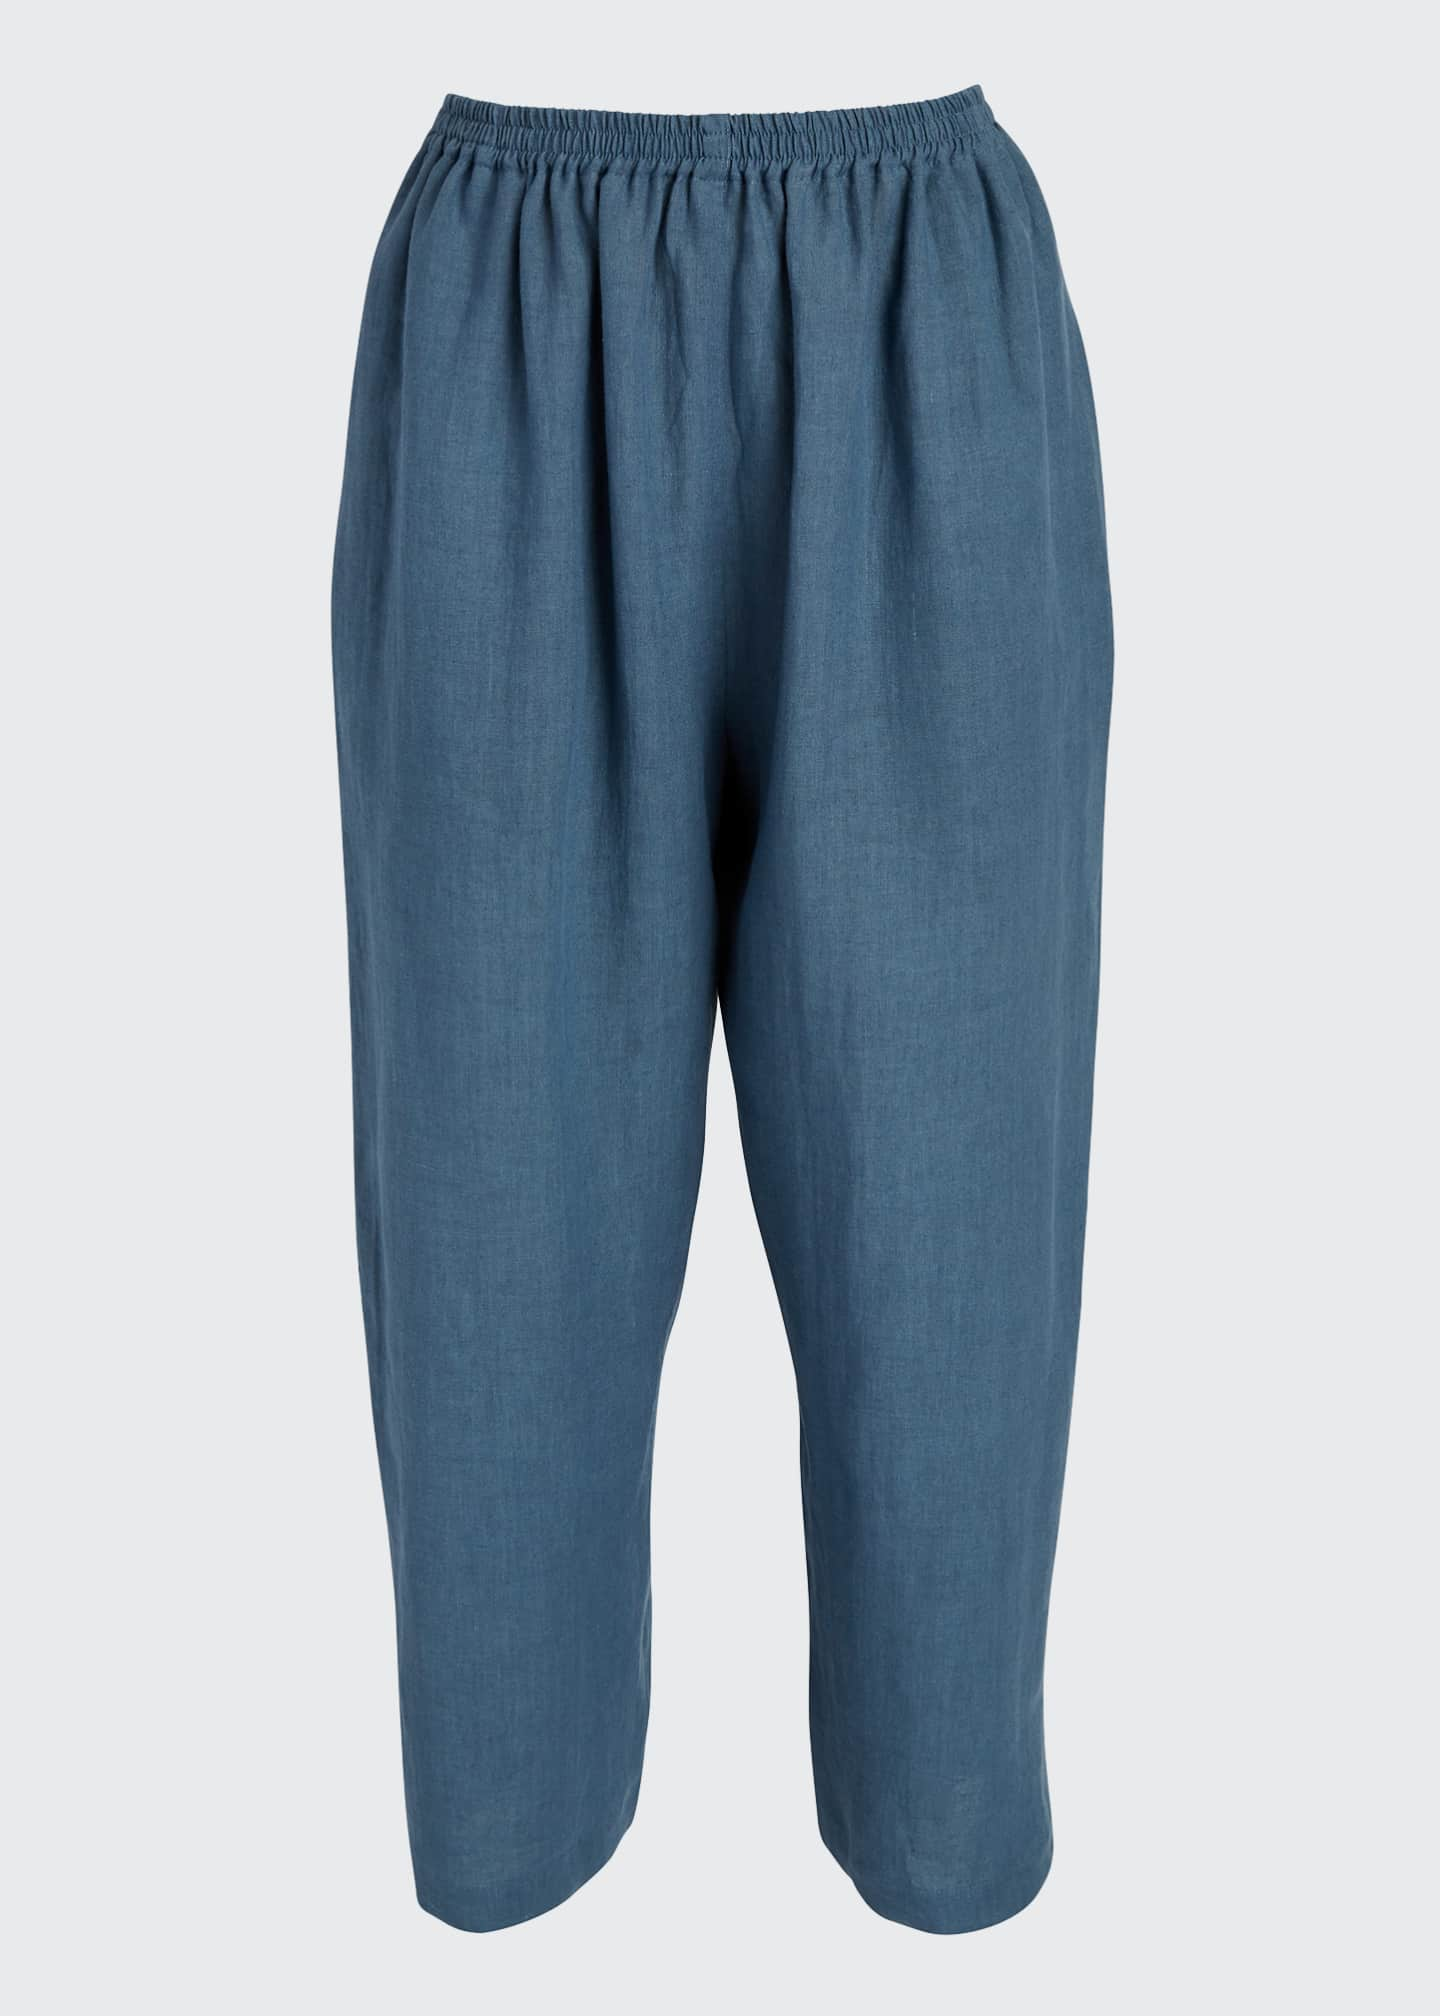 Image 5 of 5: Linen Japanese Trousers